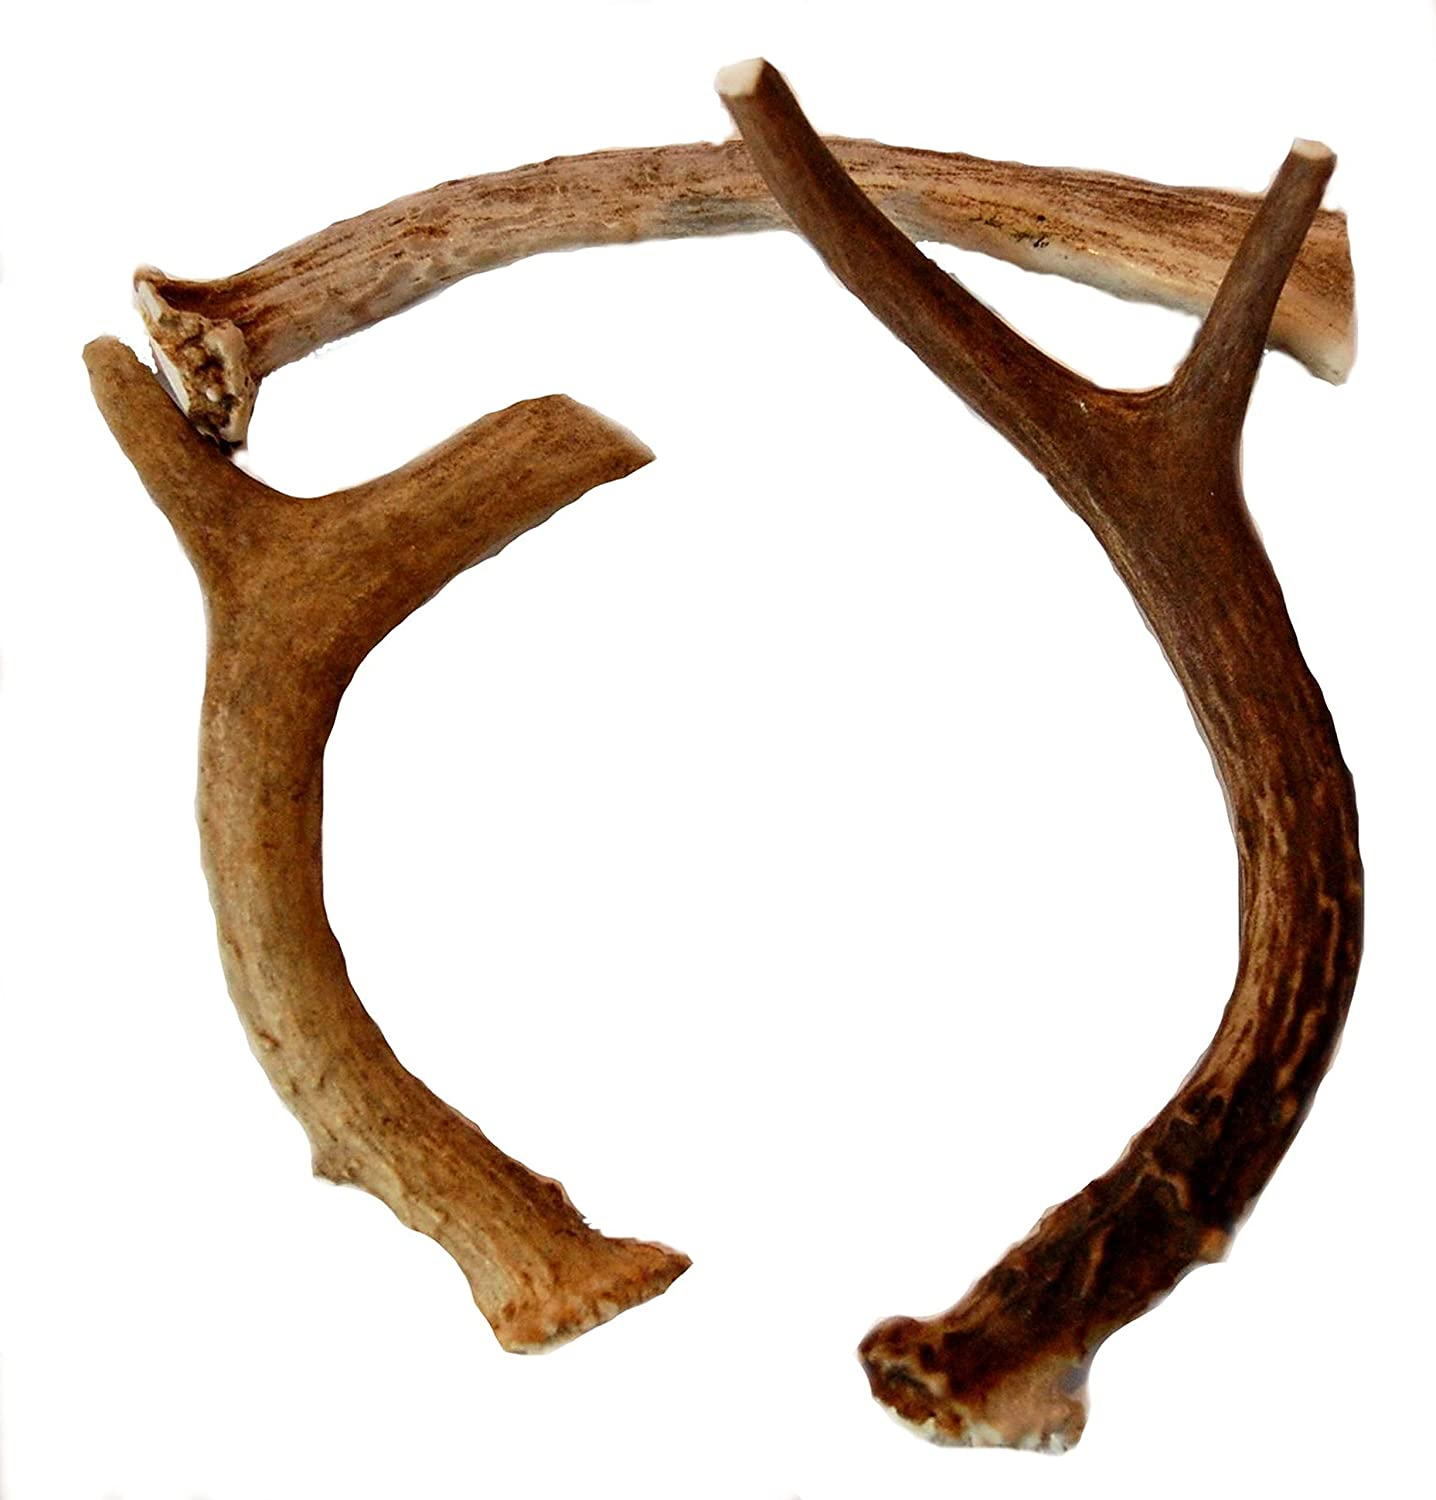 Big Dog Antler Chews 3 Pack Medium Deer Antler Dog Chews – 5 Inches to 10 Inches – for Small to Medium Size Dogs Brand